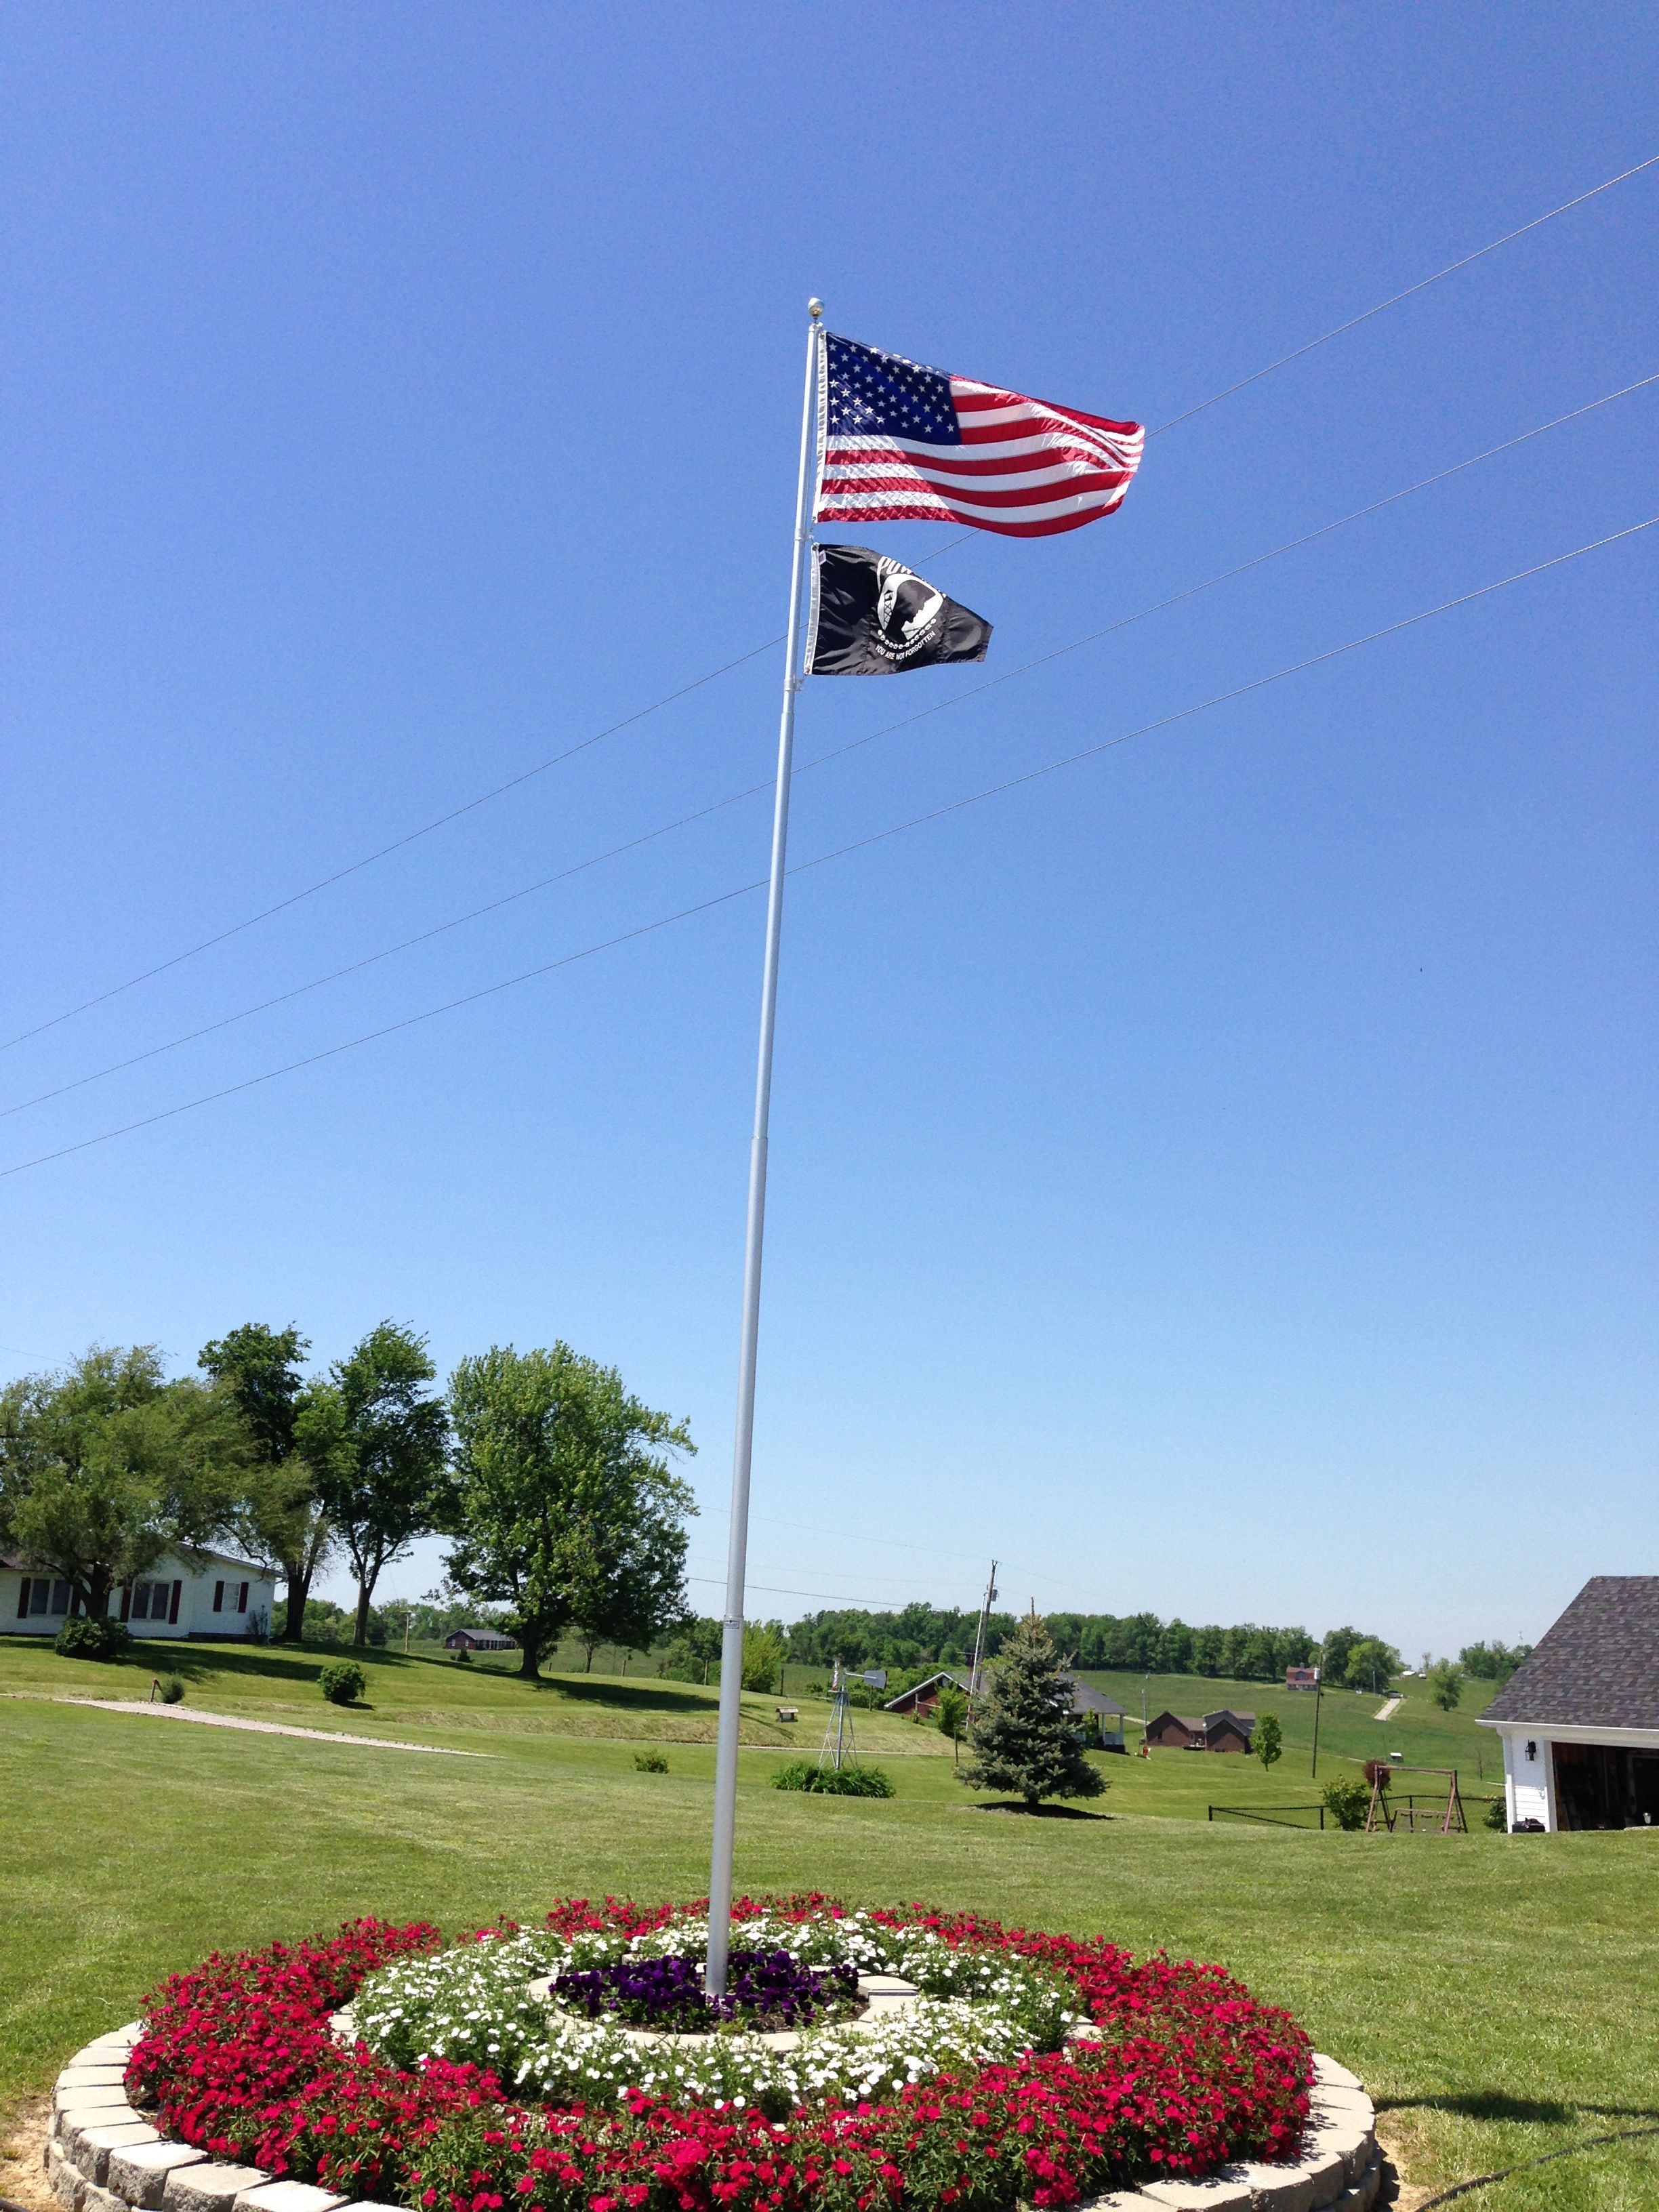 Pin By John G On My Style Flag Pole Landscaping Garden Poles Yard Flags